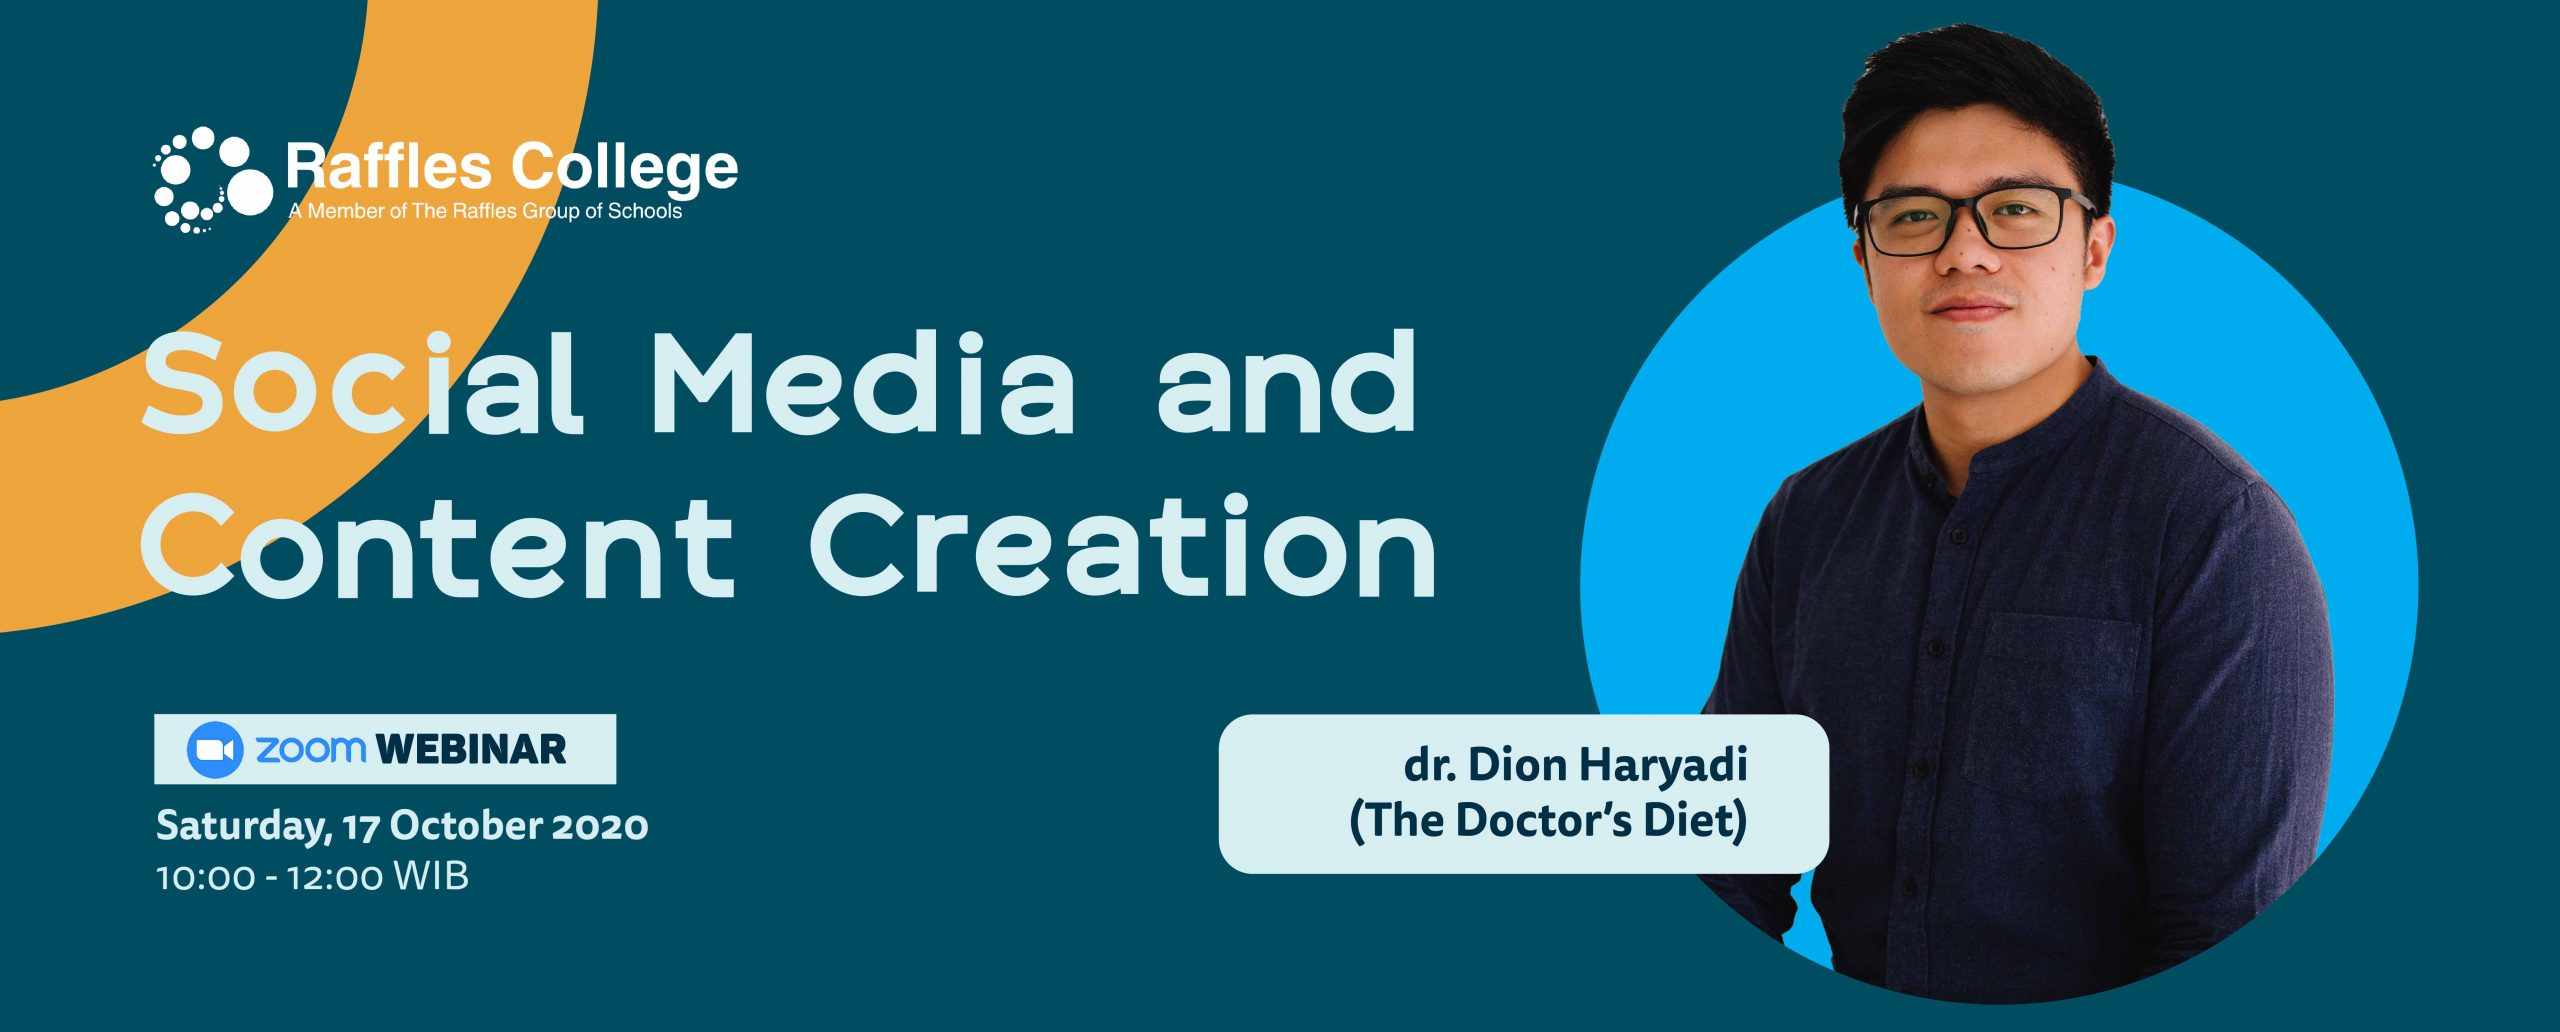 DR. DION WEBINAR : SOCIAL MEDIA AND CONTENT CREATION